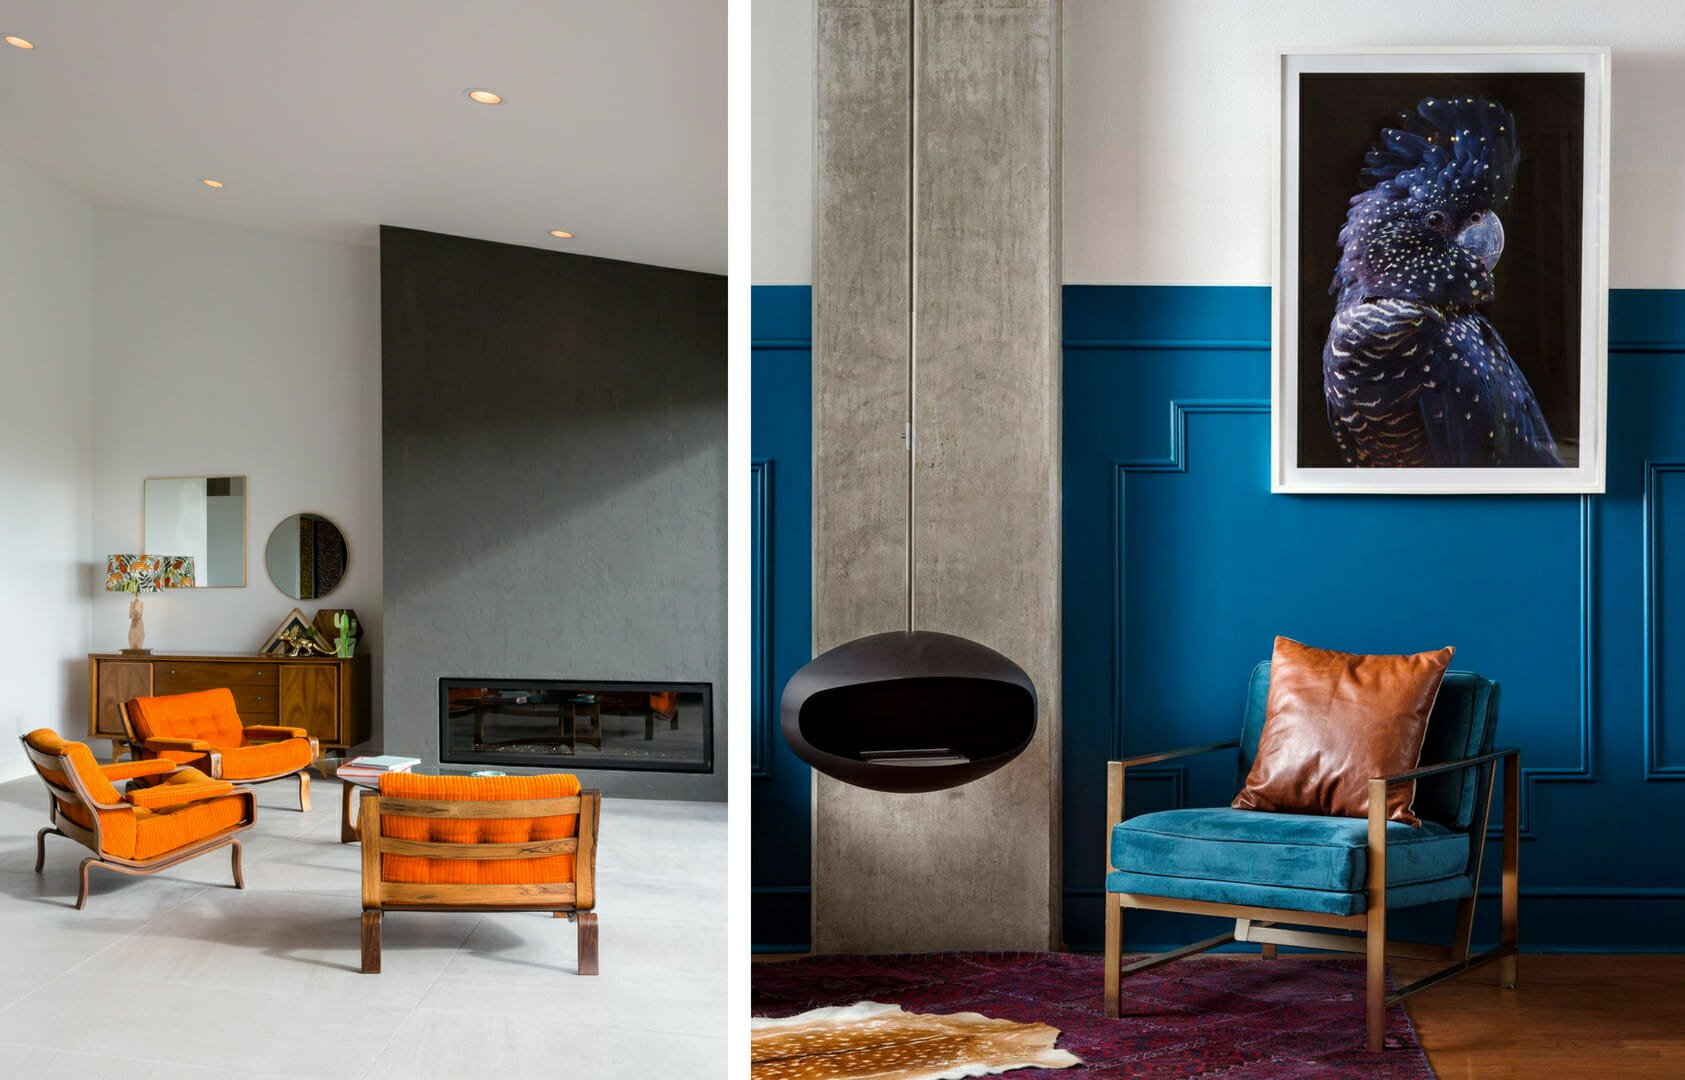 Pops of color in minimalist spaces by Decorilla designers Sara S. & Corine M.